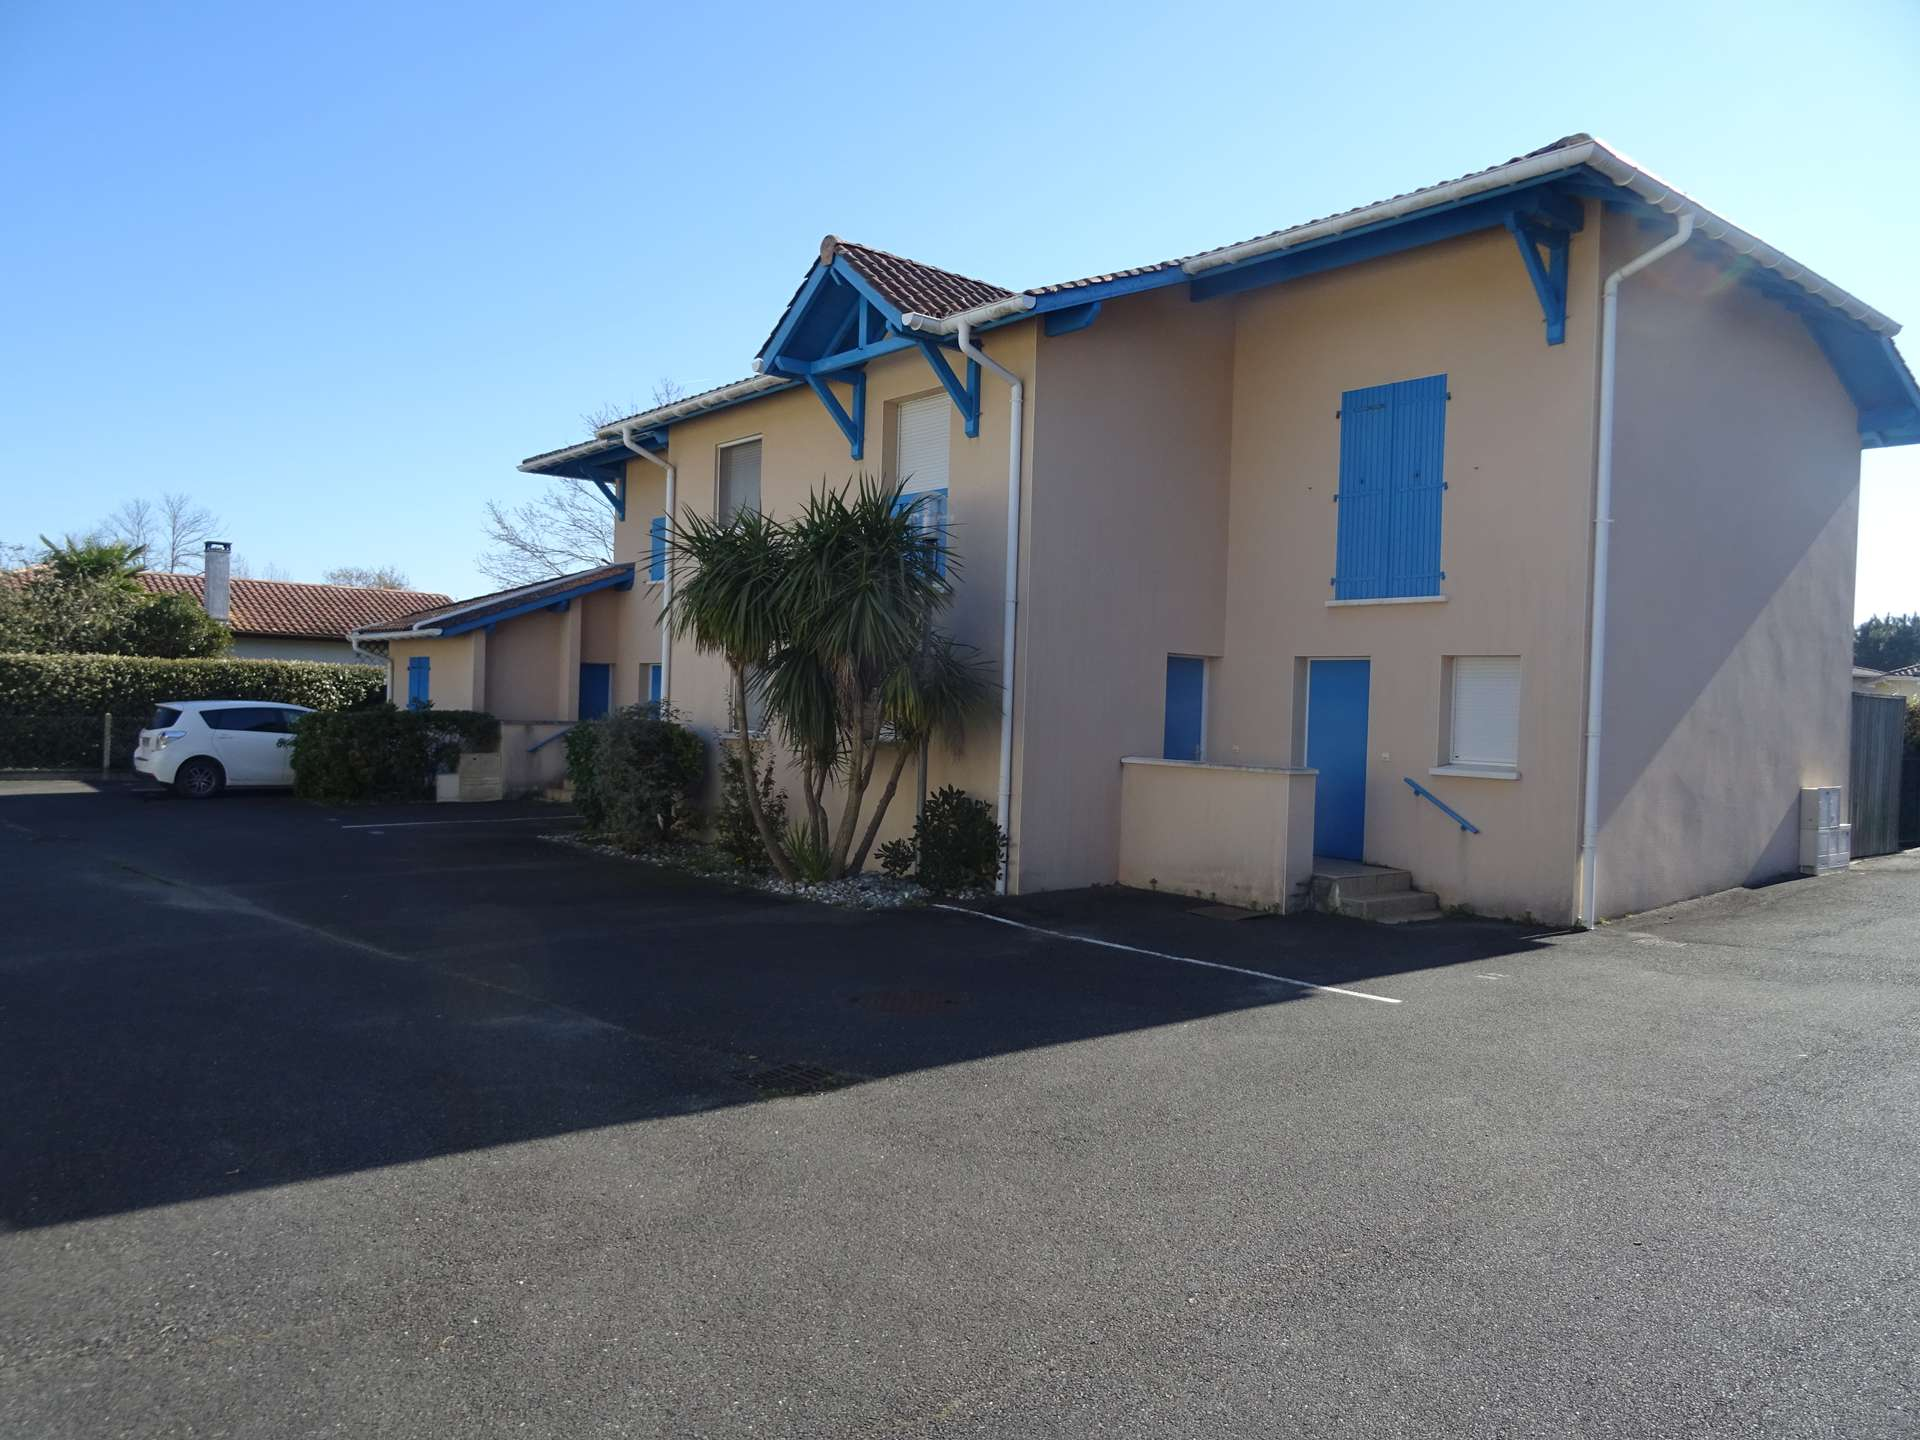 Apartment to rent in Vieux Boucau